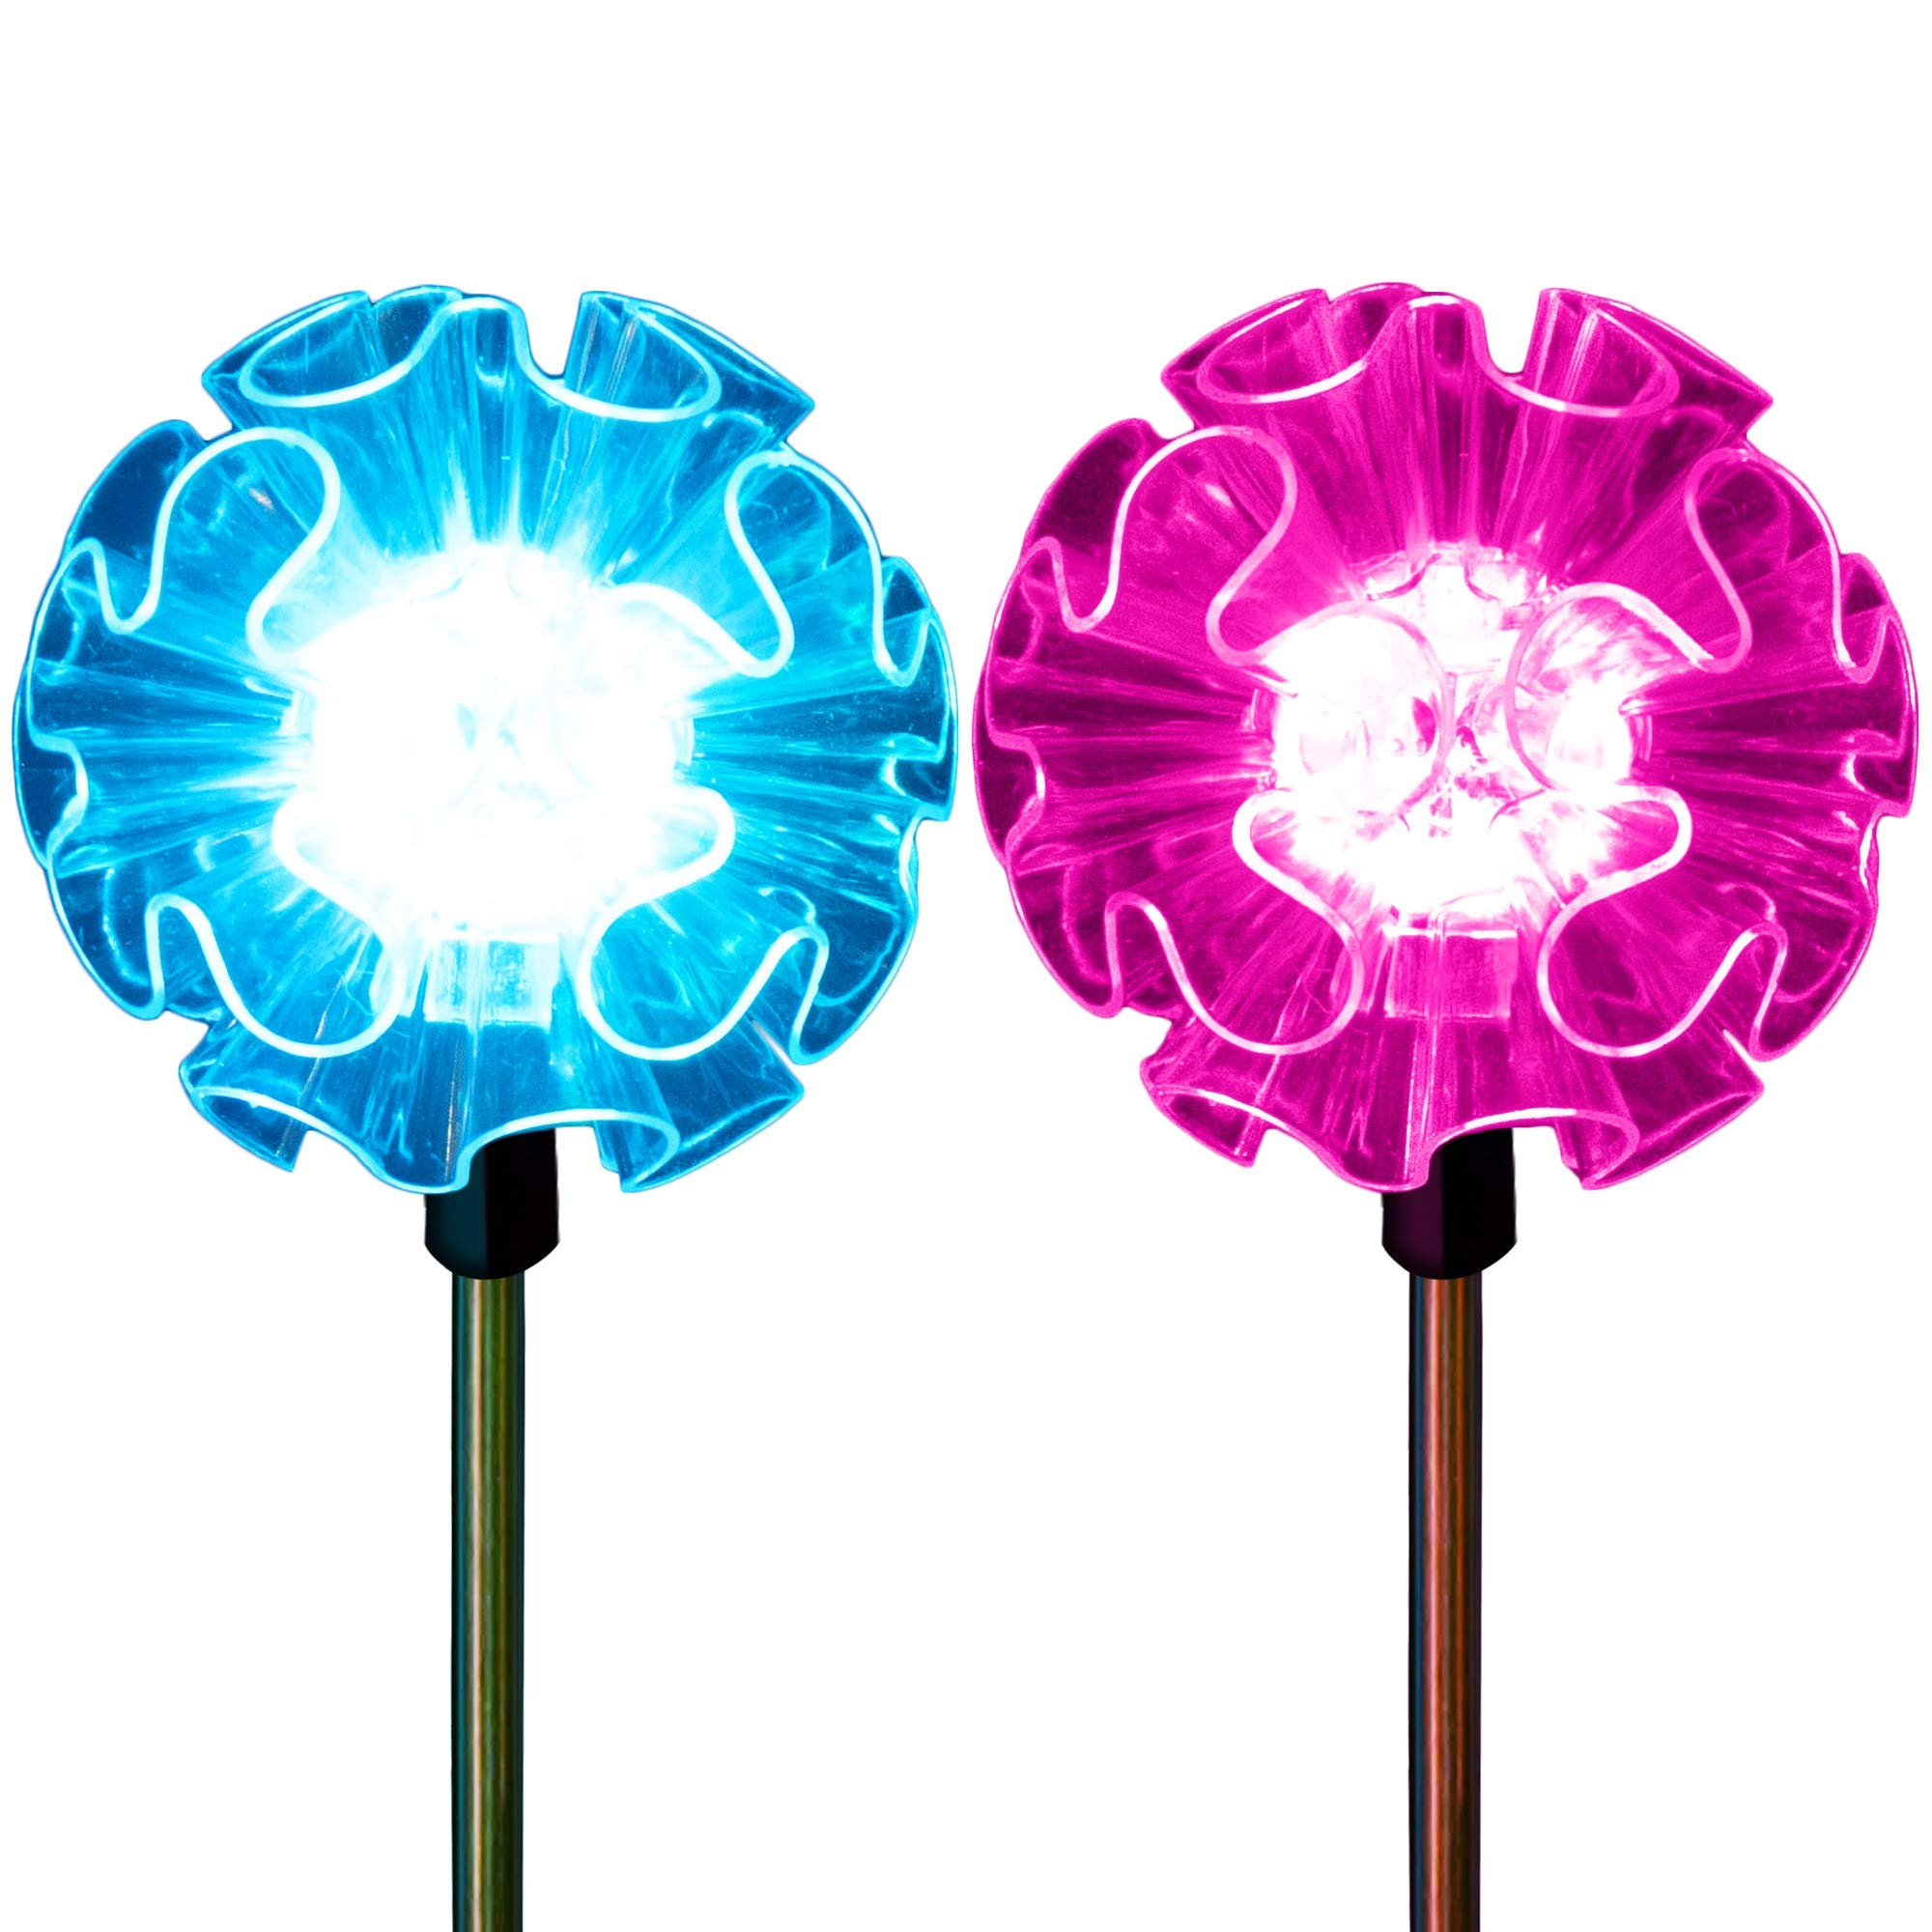 Flower Lights Solar Powered Garden Stakes Color Changing Hydrangea Outdoor Path Landscape Decoration Walkway Pathway Decor in-Ground Fixtures (Set of 2) by SolarDuke